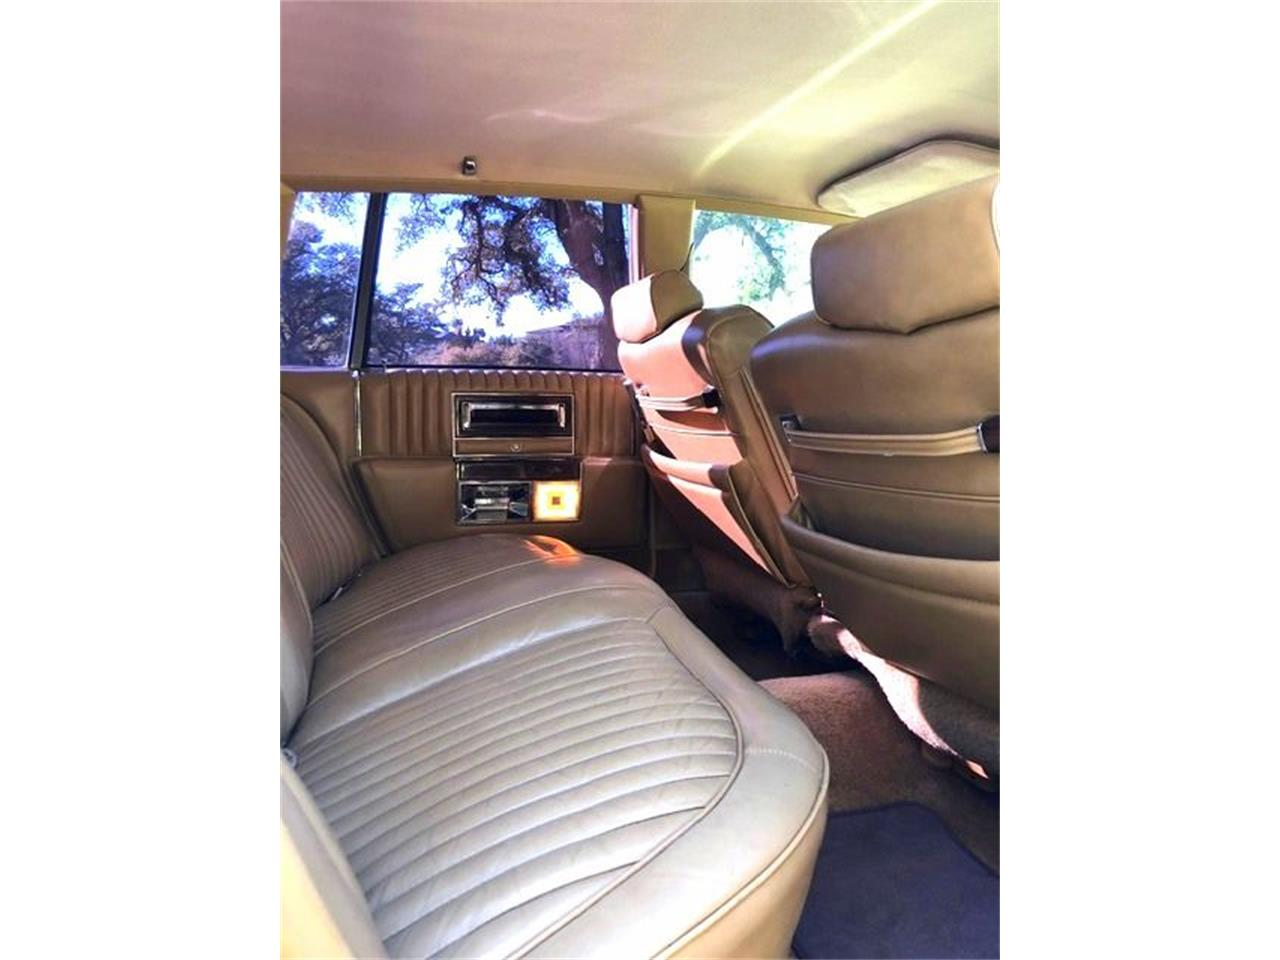 1987 Cadillac Fleetwood Brougham for sale in Stratford, NJ – photo 17